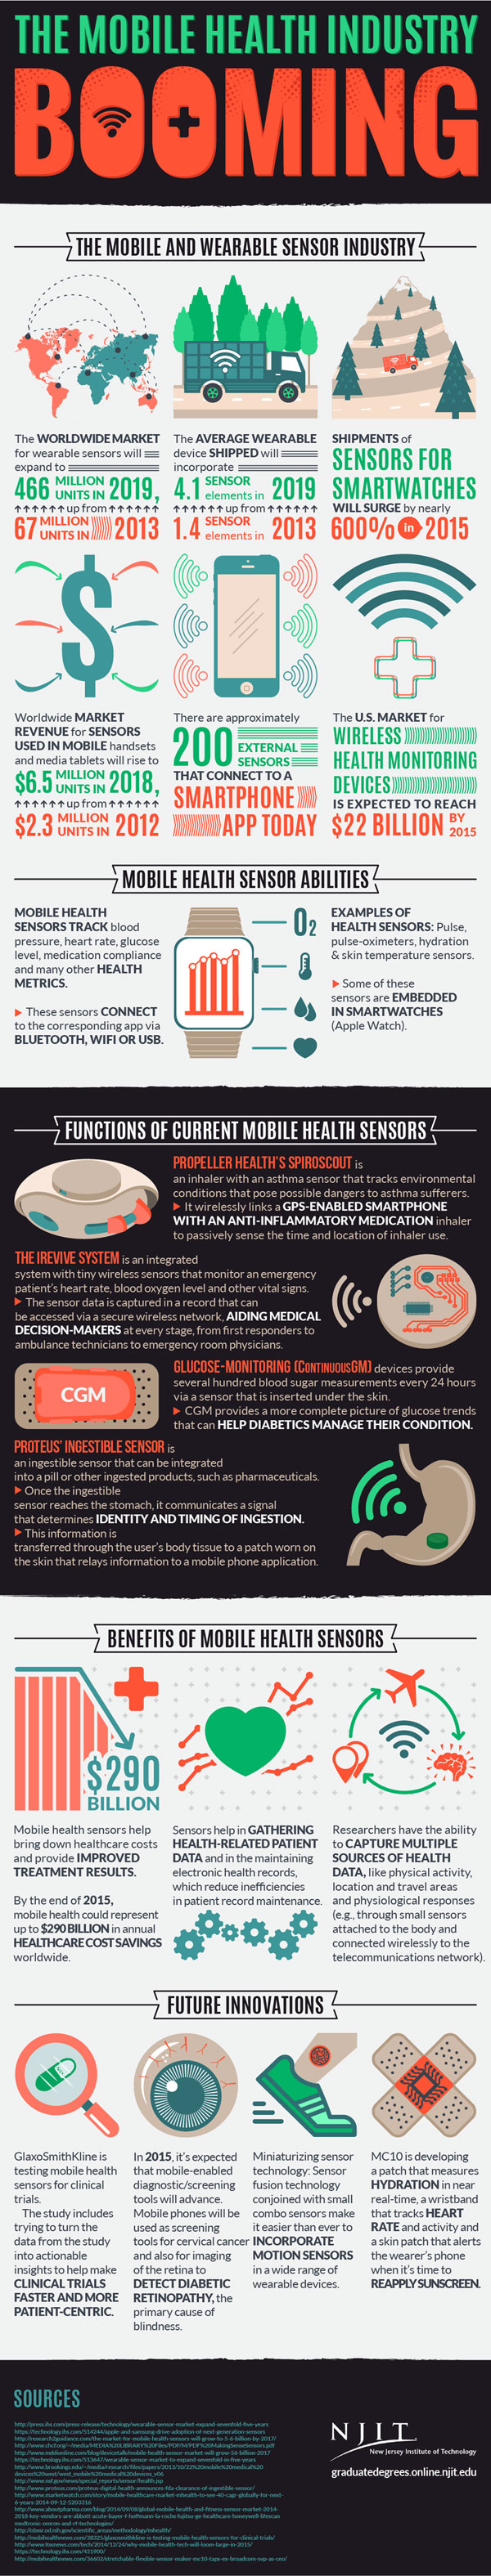 Mobile-health-industry